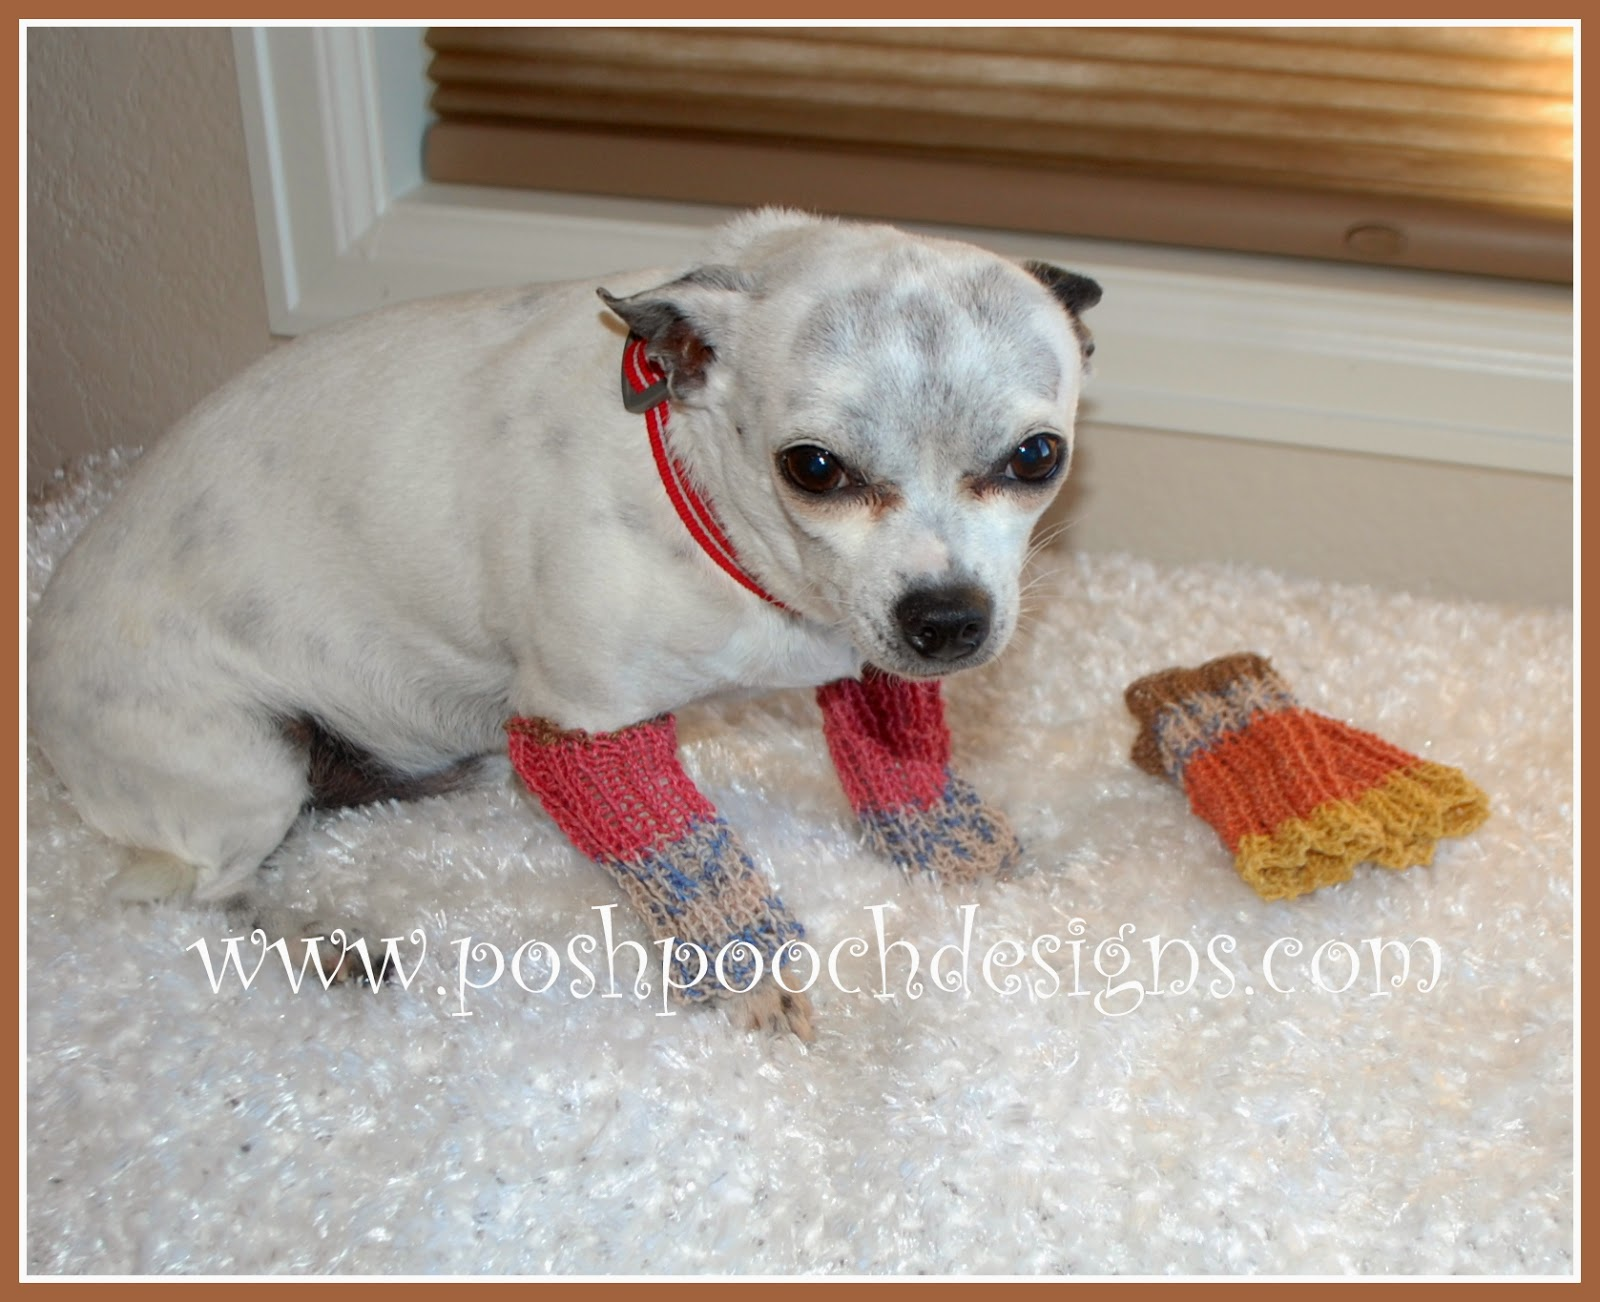 Posh pooch designs dog clothes free knitting patterns leg warmers for dogs 3 sizes bankloansurffo Image collections